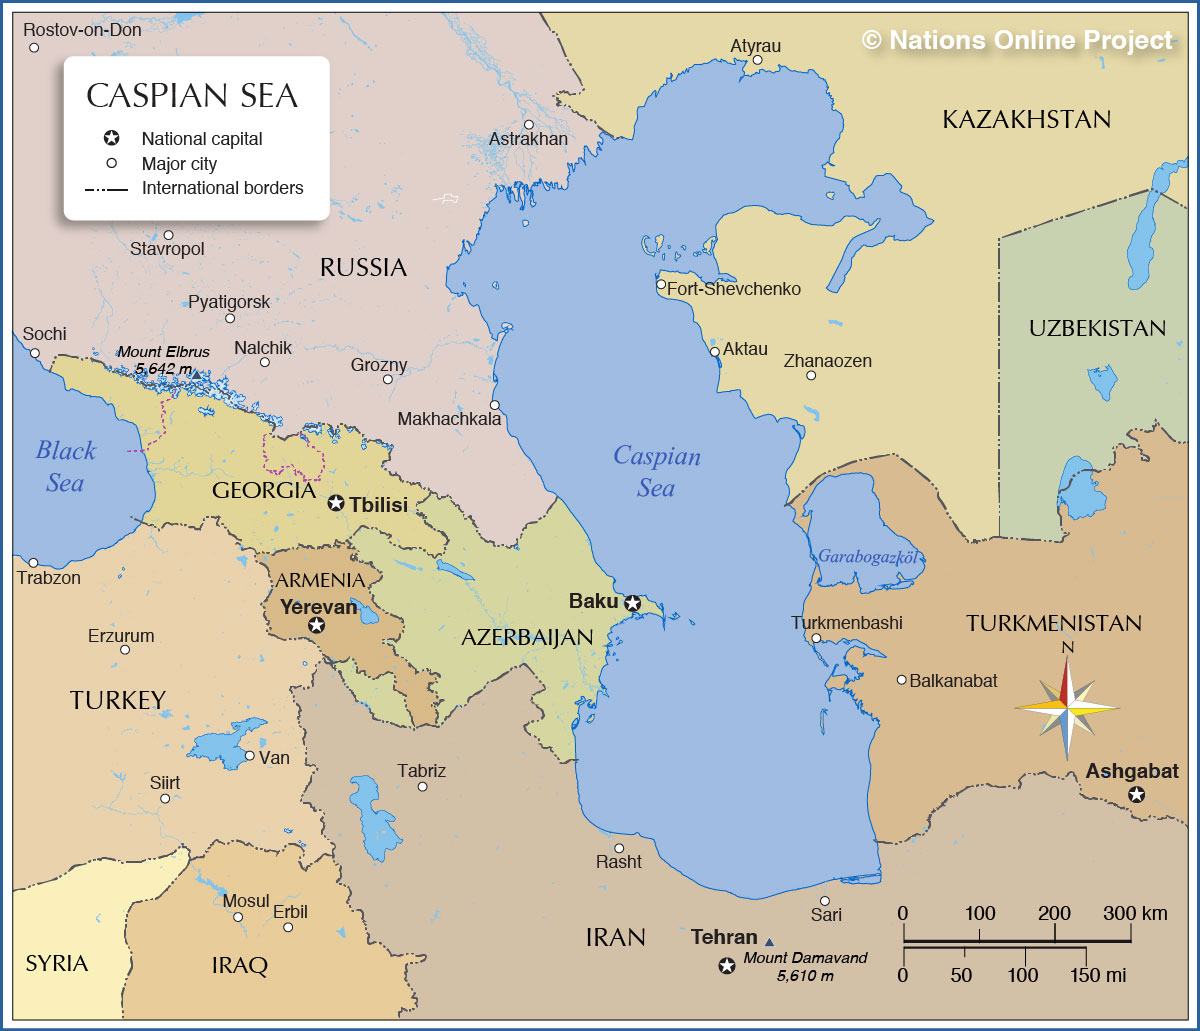 Worksheet. Map of the Caspian Sea  Nations Online Project